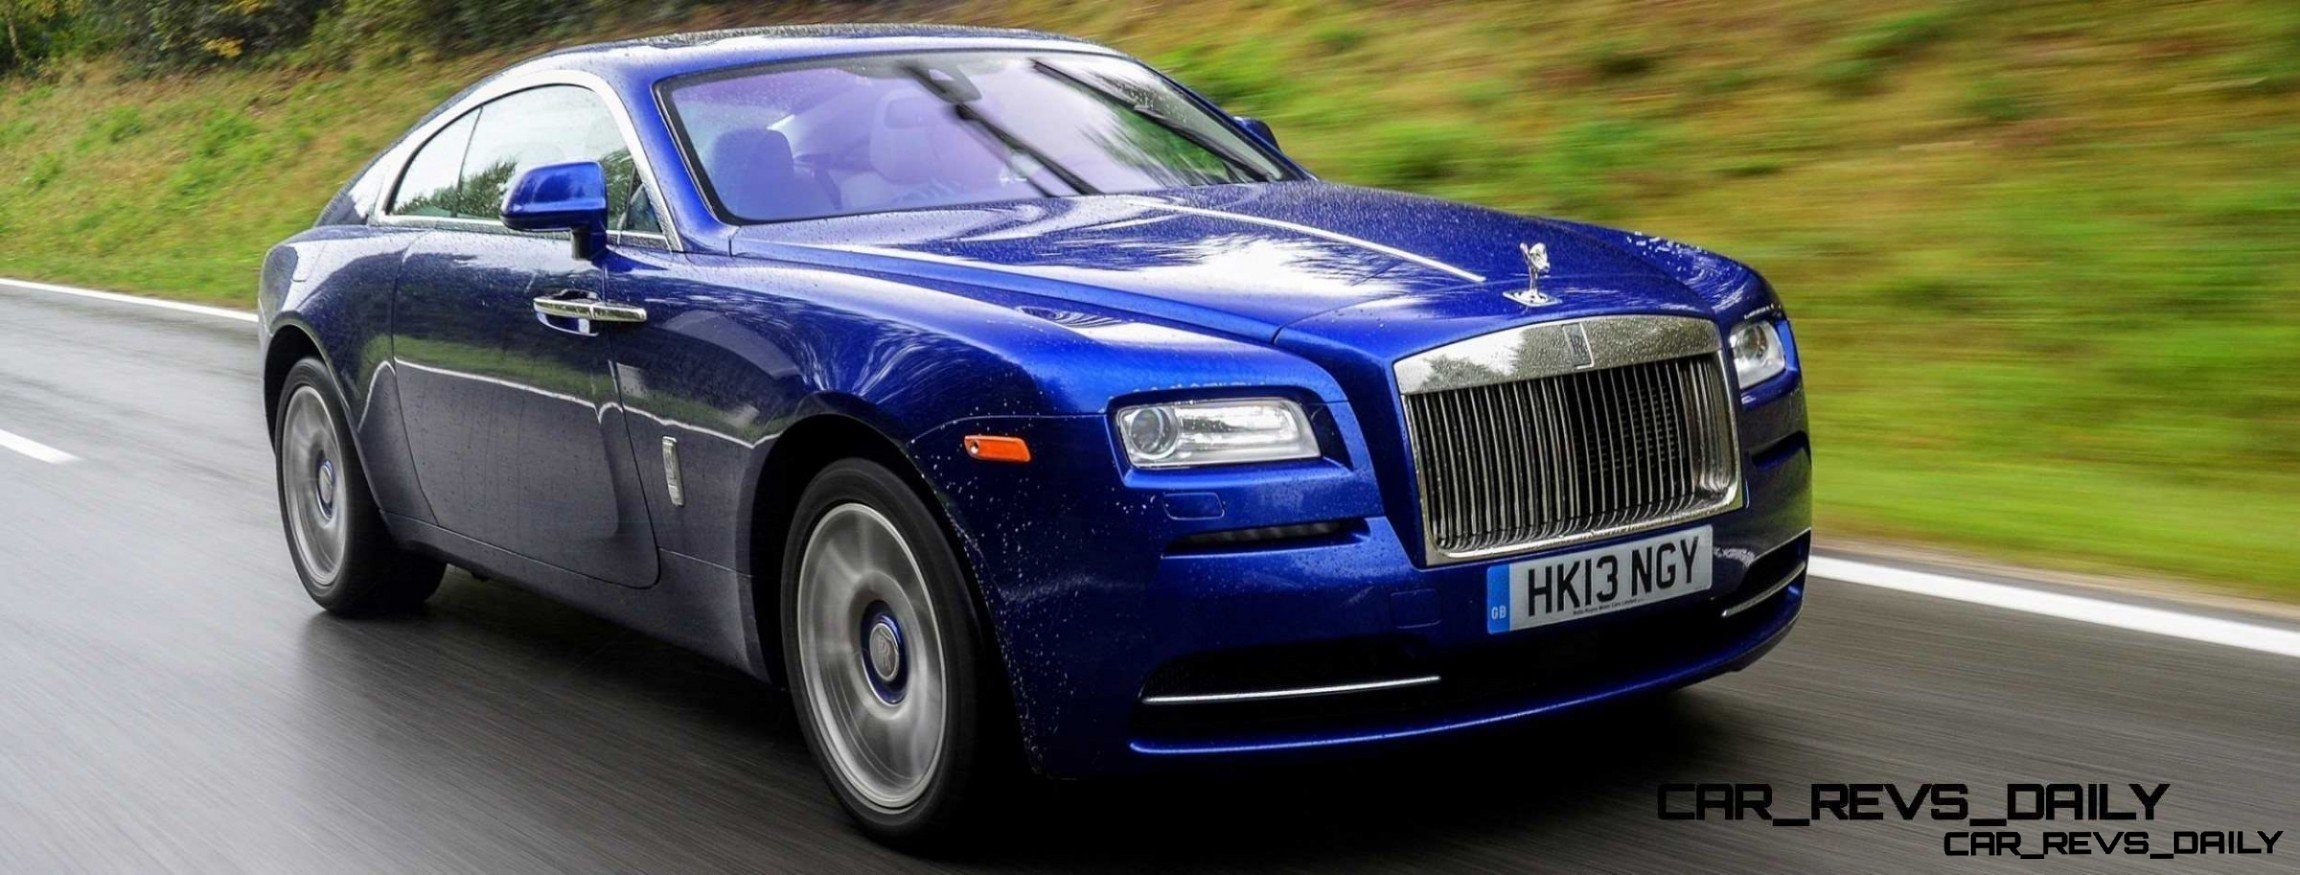 Rolls-Royce Wraith - Color Showcase - Salamanca Blue11